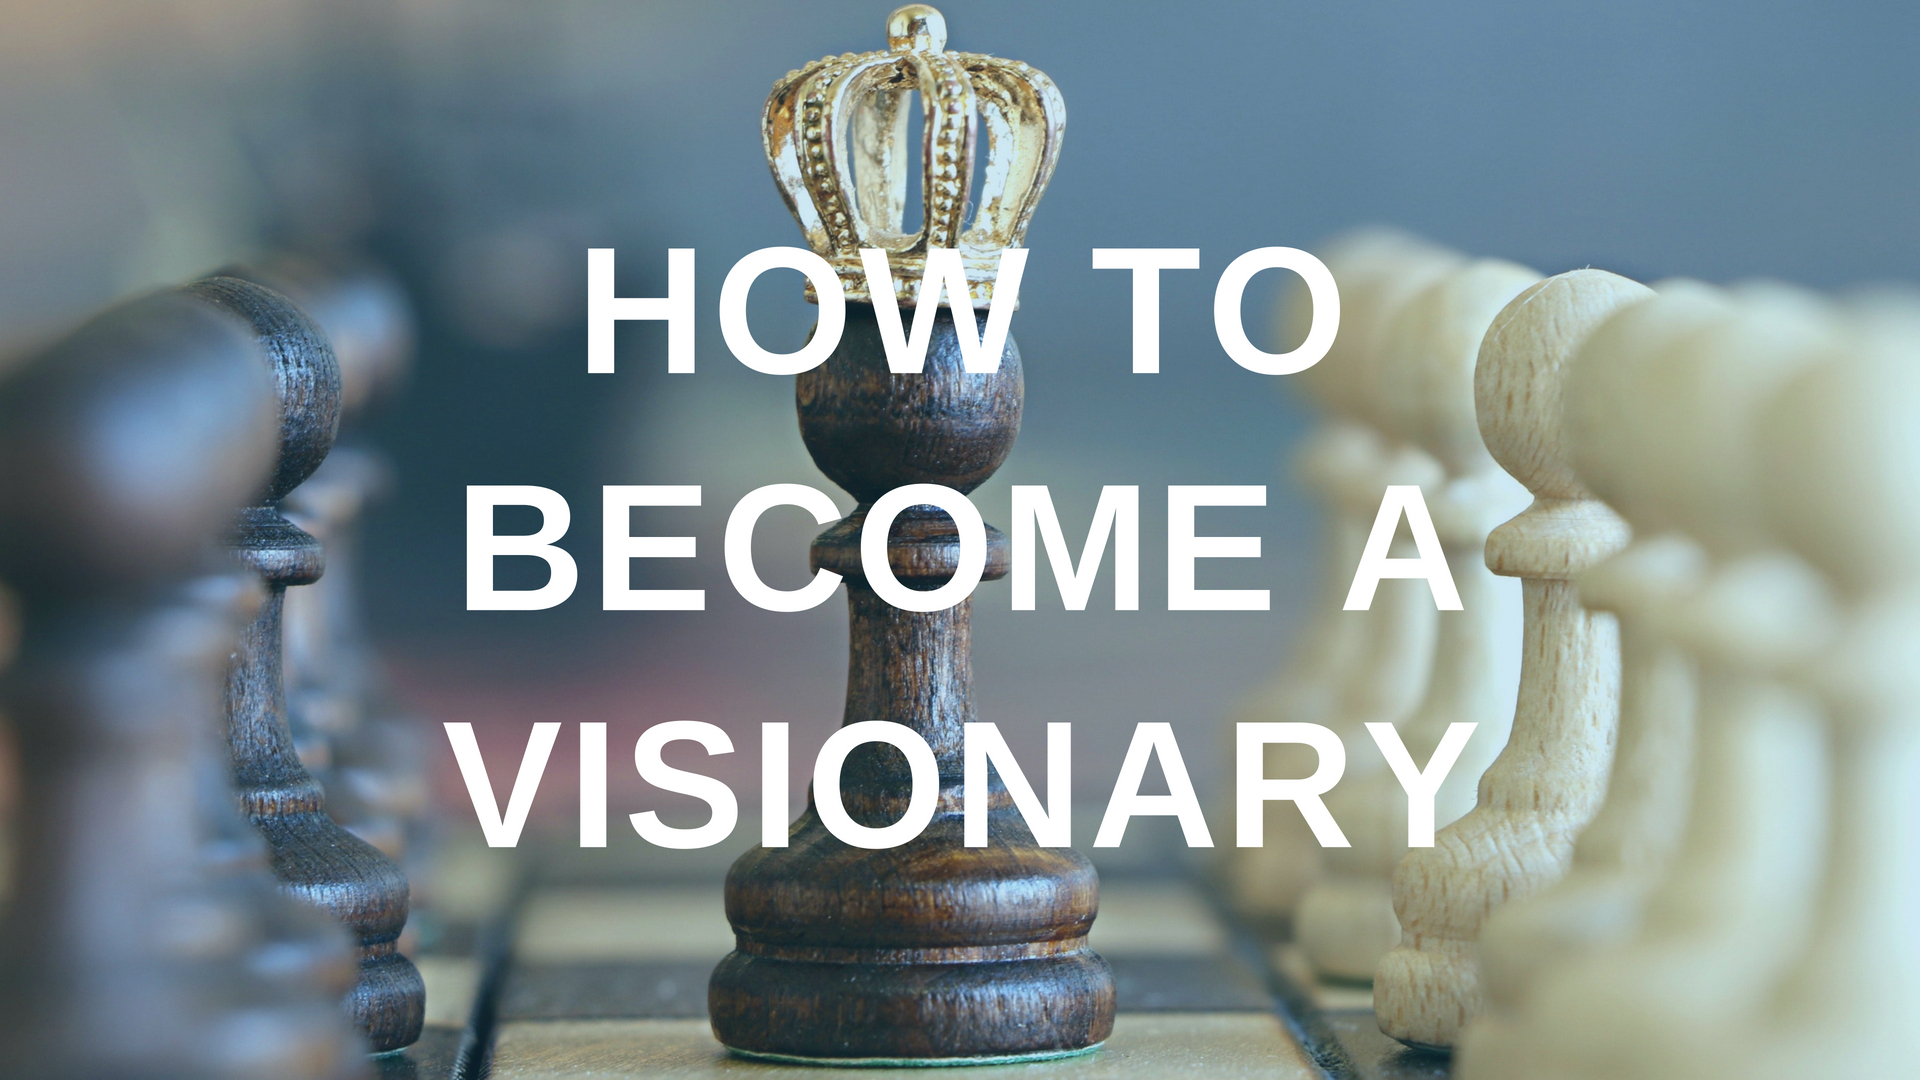 How to Become a Visionary